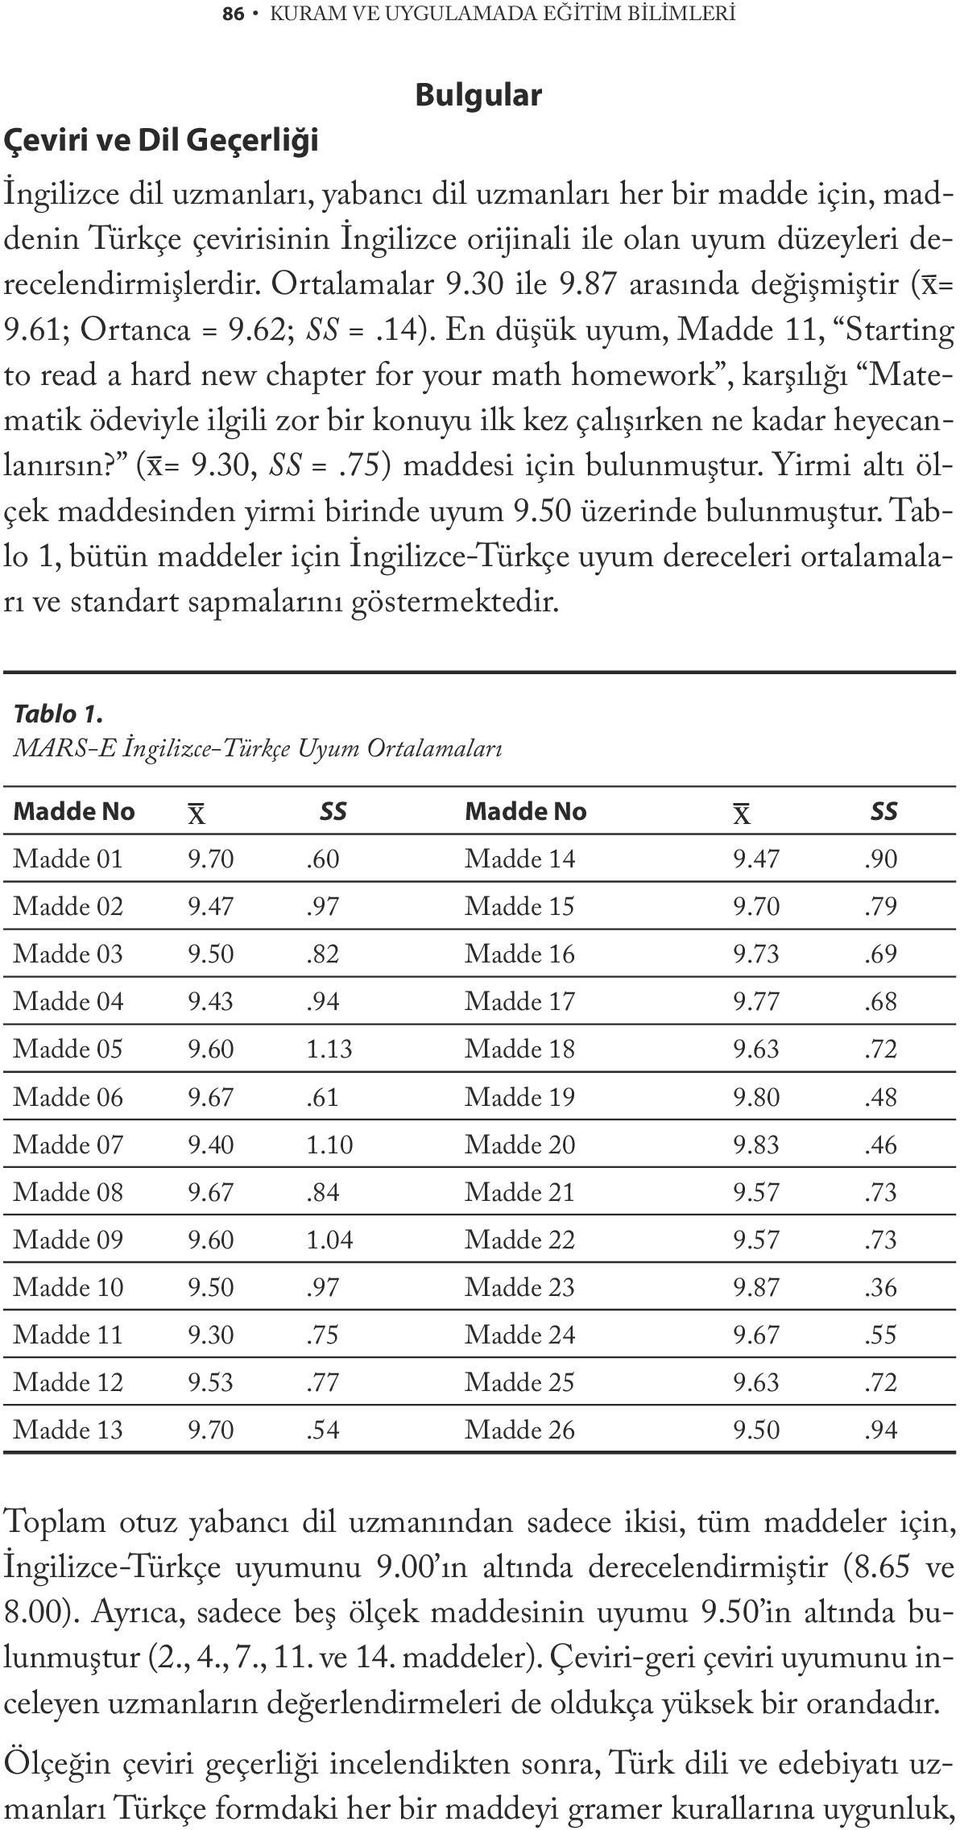 En düşük uyum, Madde 11, Starting to read a hard new chapter for your math homework, karşılığı Matematik ödeviyle ilgili zor bir konuyu ilk kez çalışırken ne kadar heyecanlanırsın? (x= 9.30, SS =.